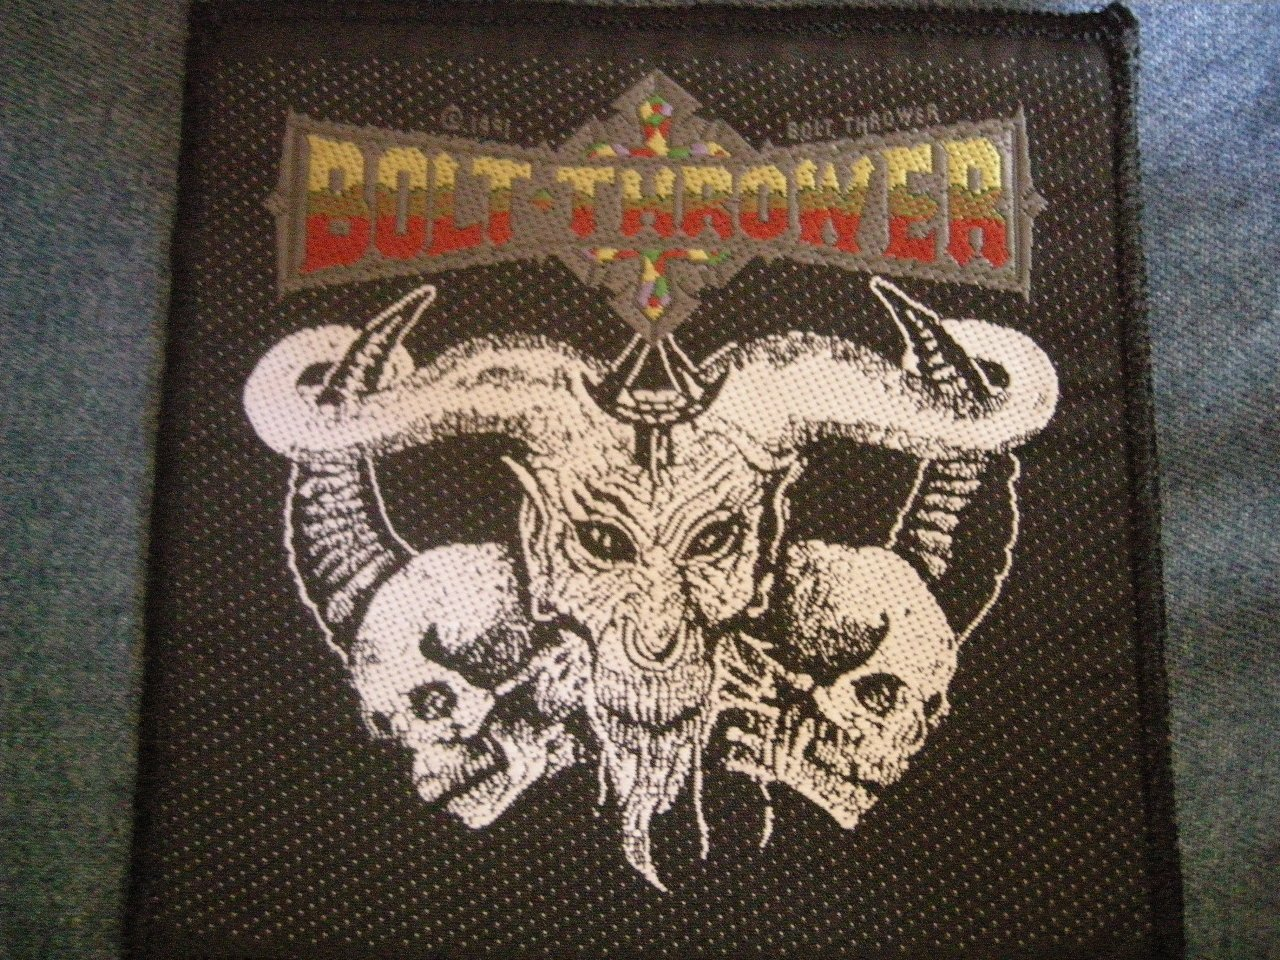 BOLT THROWER sew-on PATCH demon logo VINTAGE